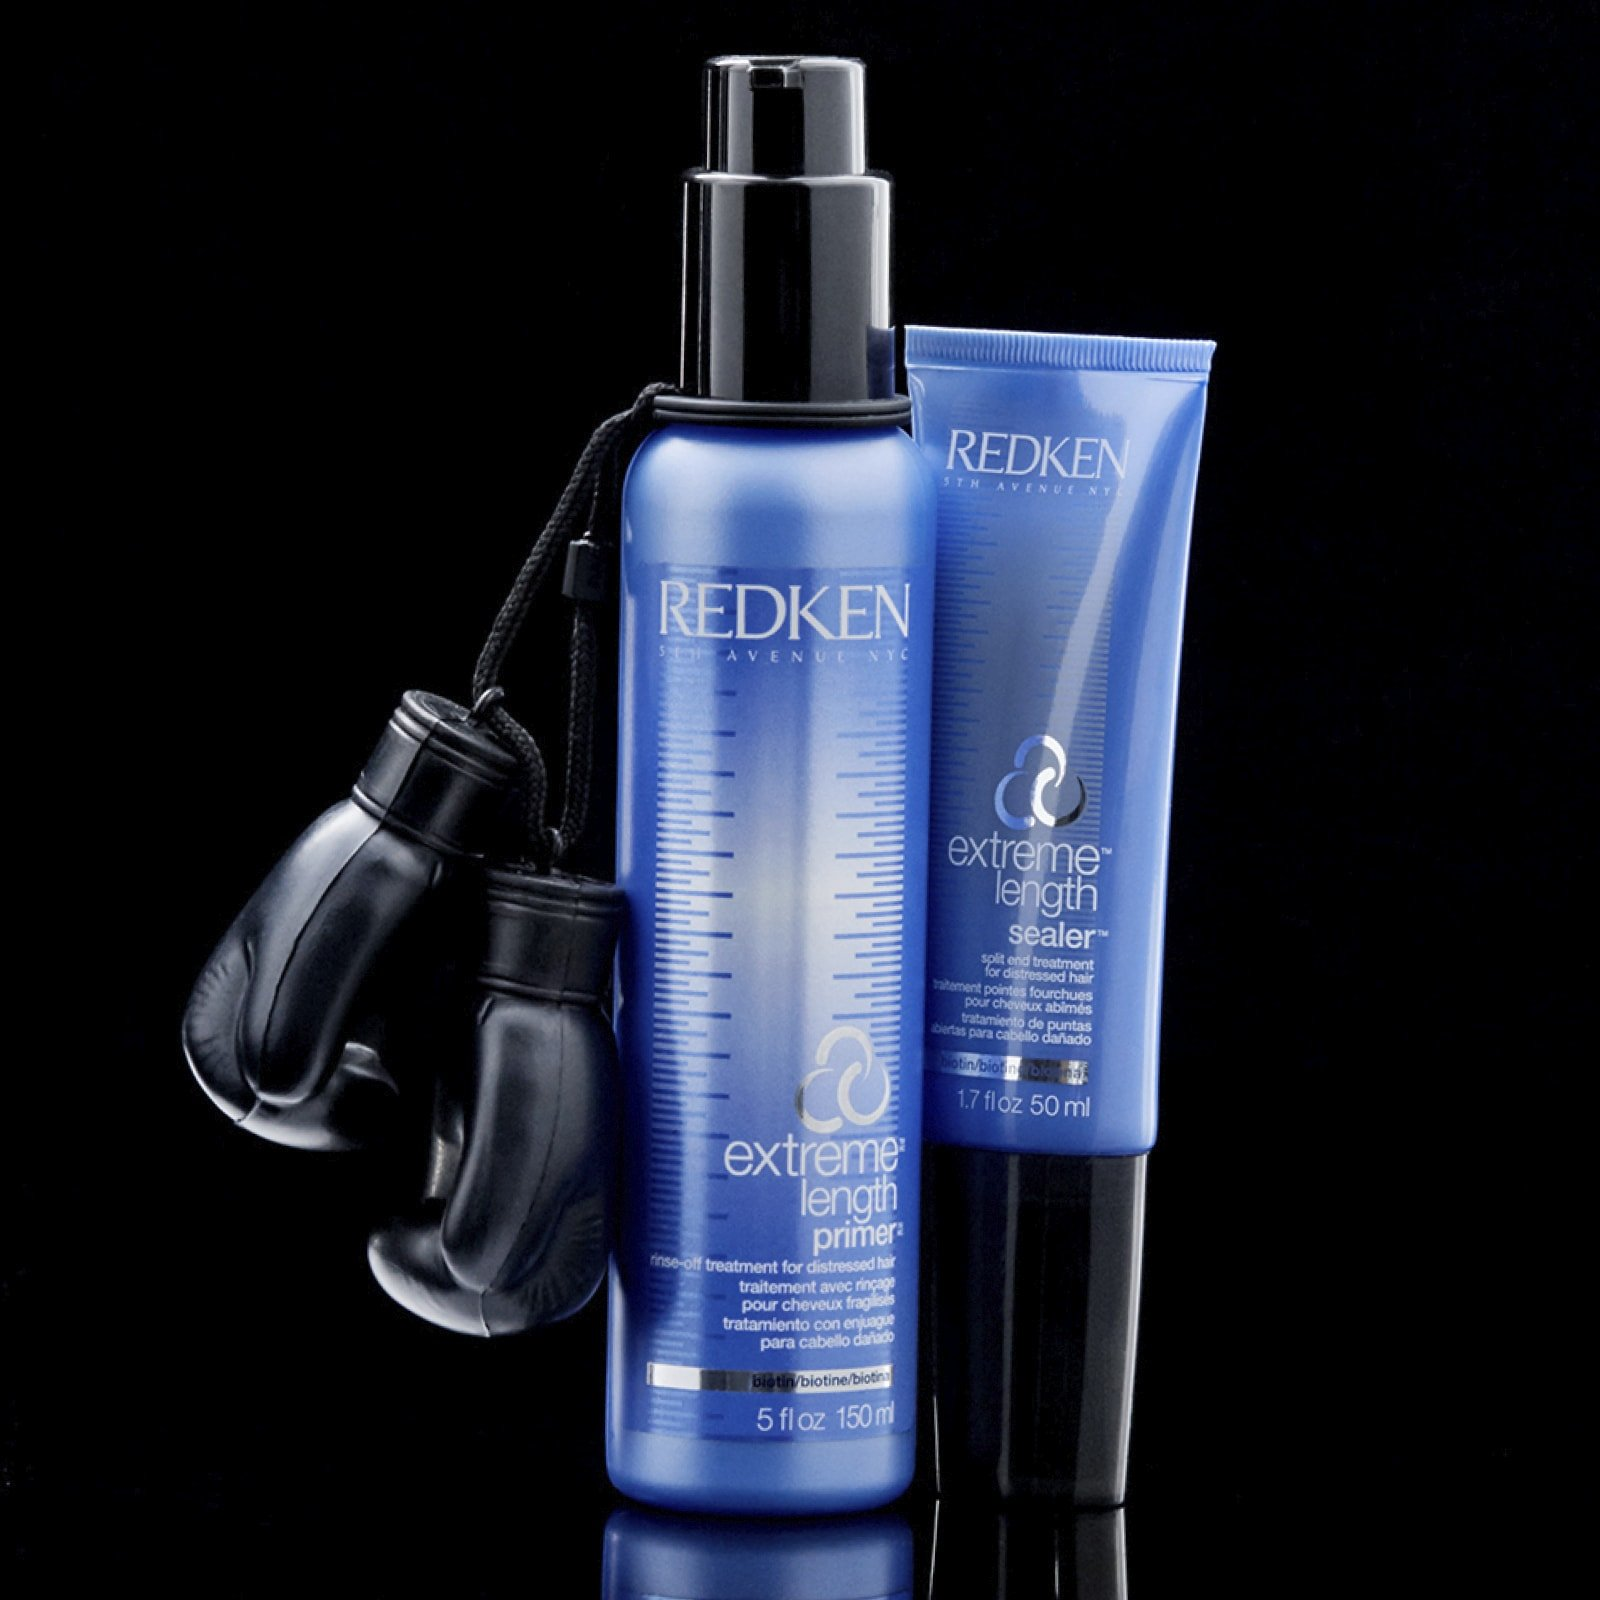 Redken Extreme Primer next to Extreme Split End Sealer and boxing glove.